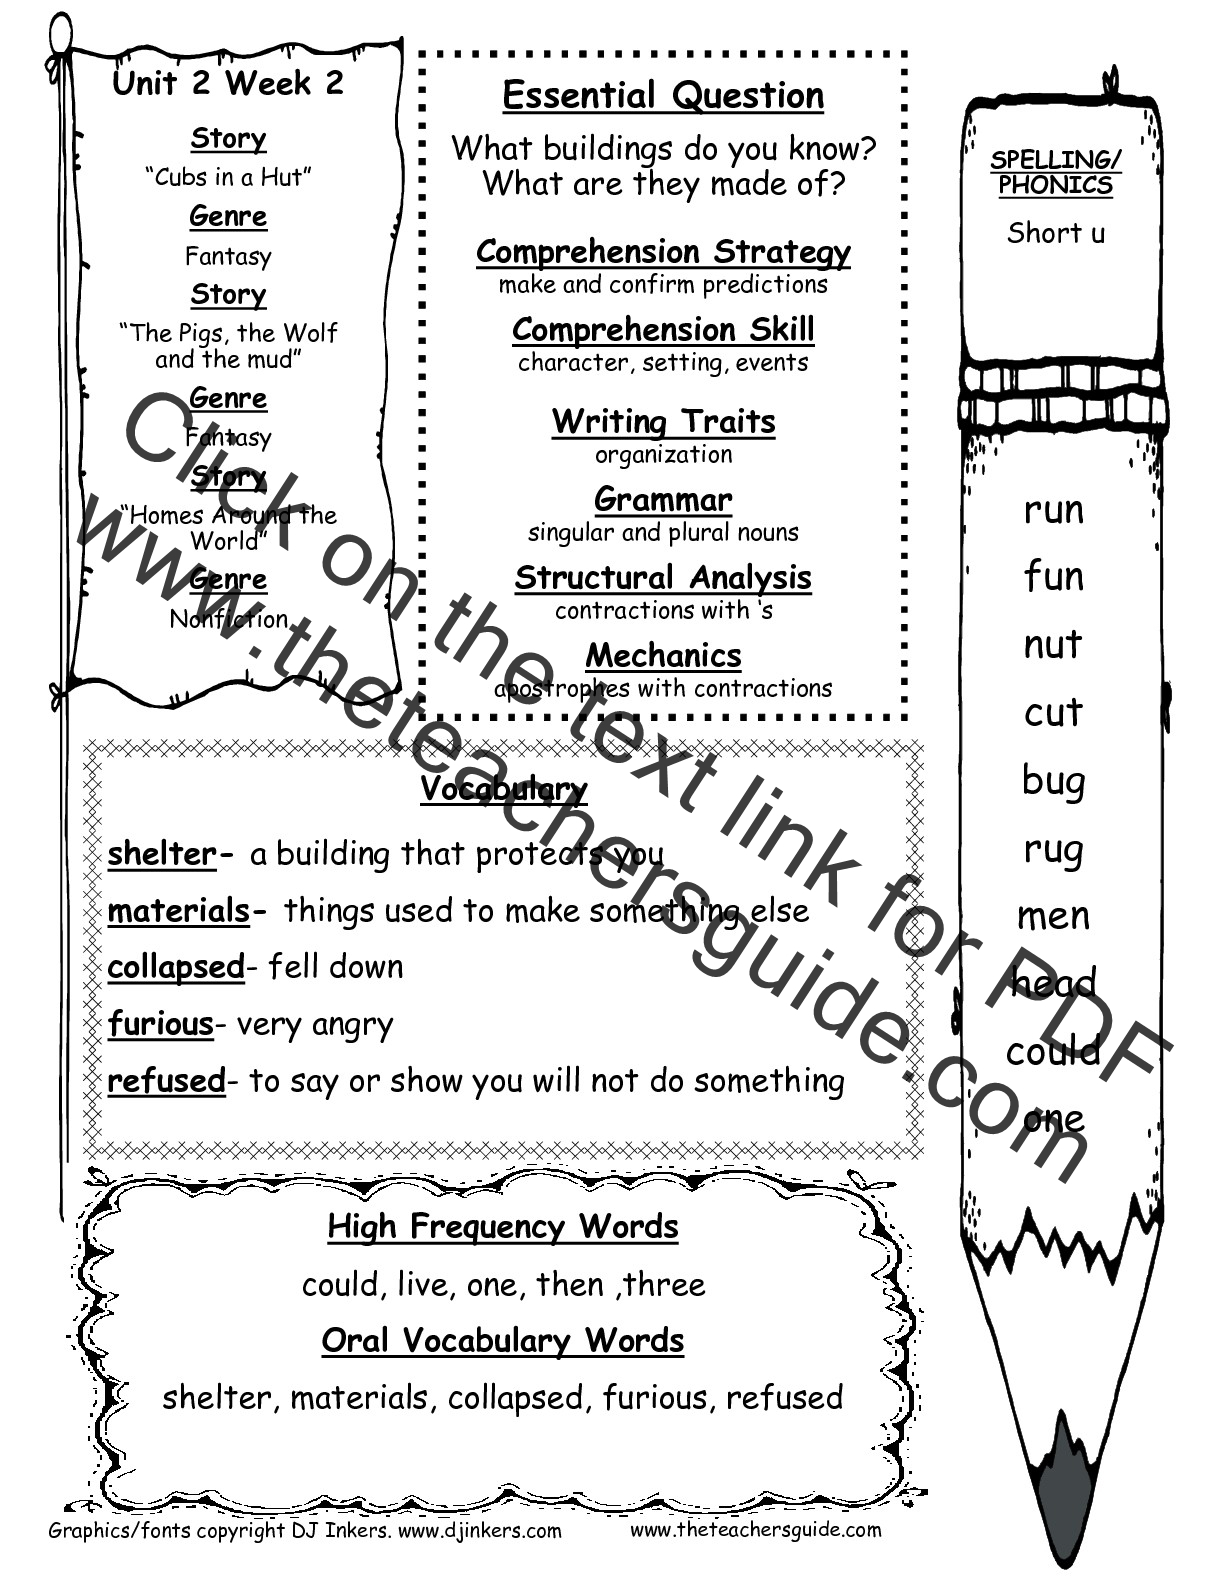 worksheet Reading Comprehension Worksheets 1st Grade mcgraw hill wonders first grade resources and printouts unit 2 two week two